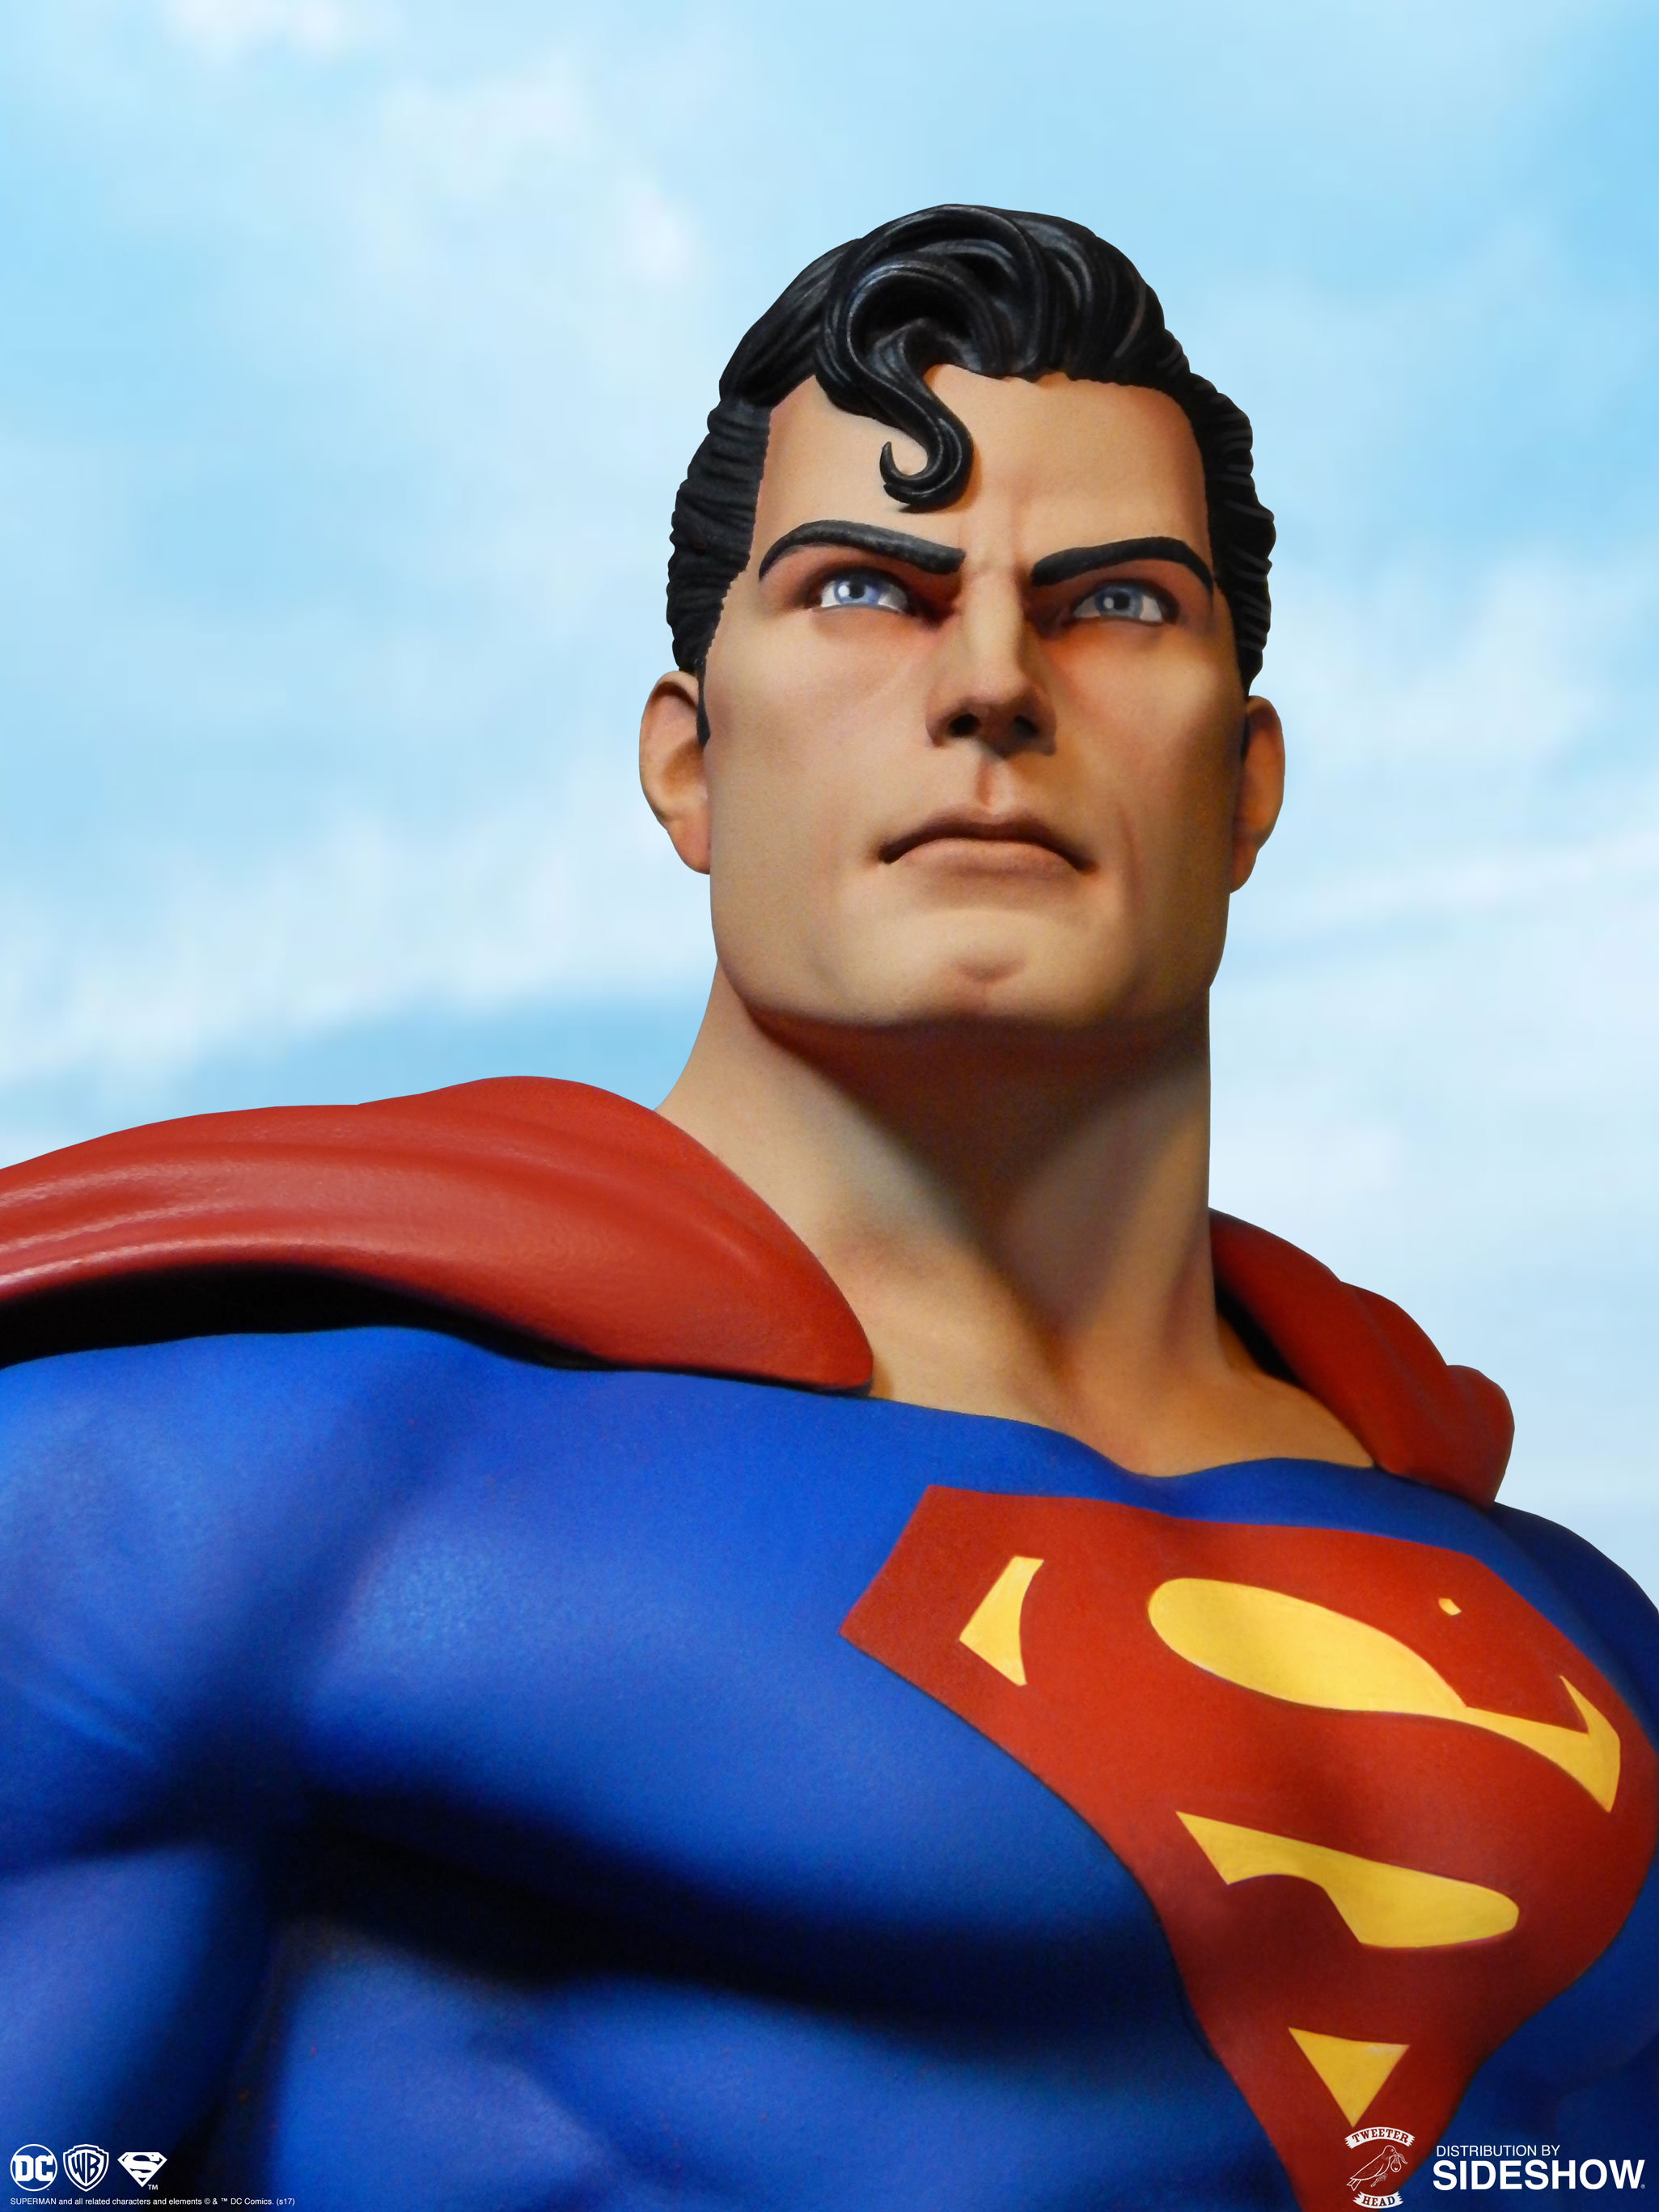 dc-comics-superman-maquette-tweeterhead-903305-02